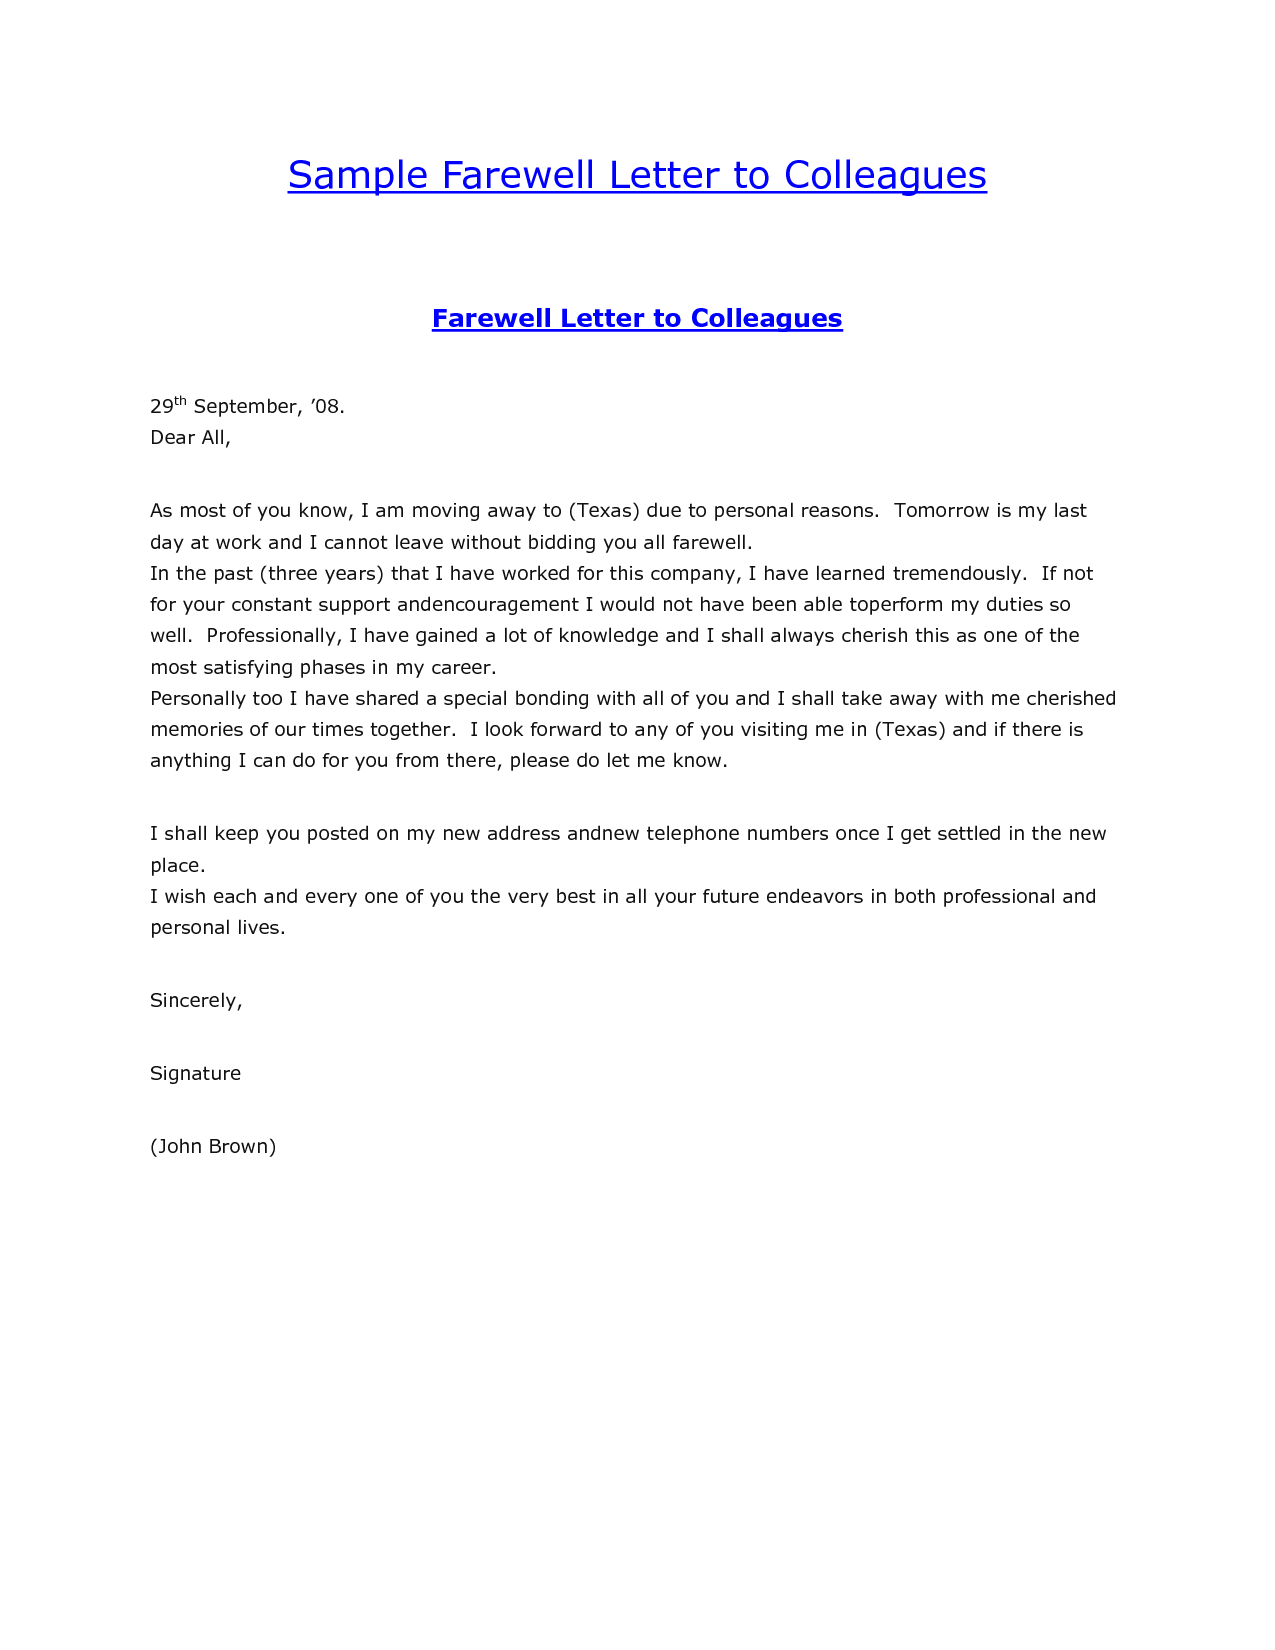 Sample Farewell Letter To ColleaguesGoodbye Letter Formal letter ...